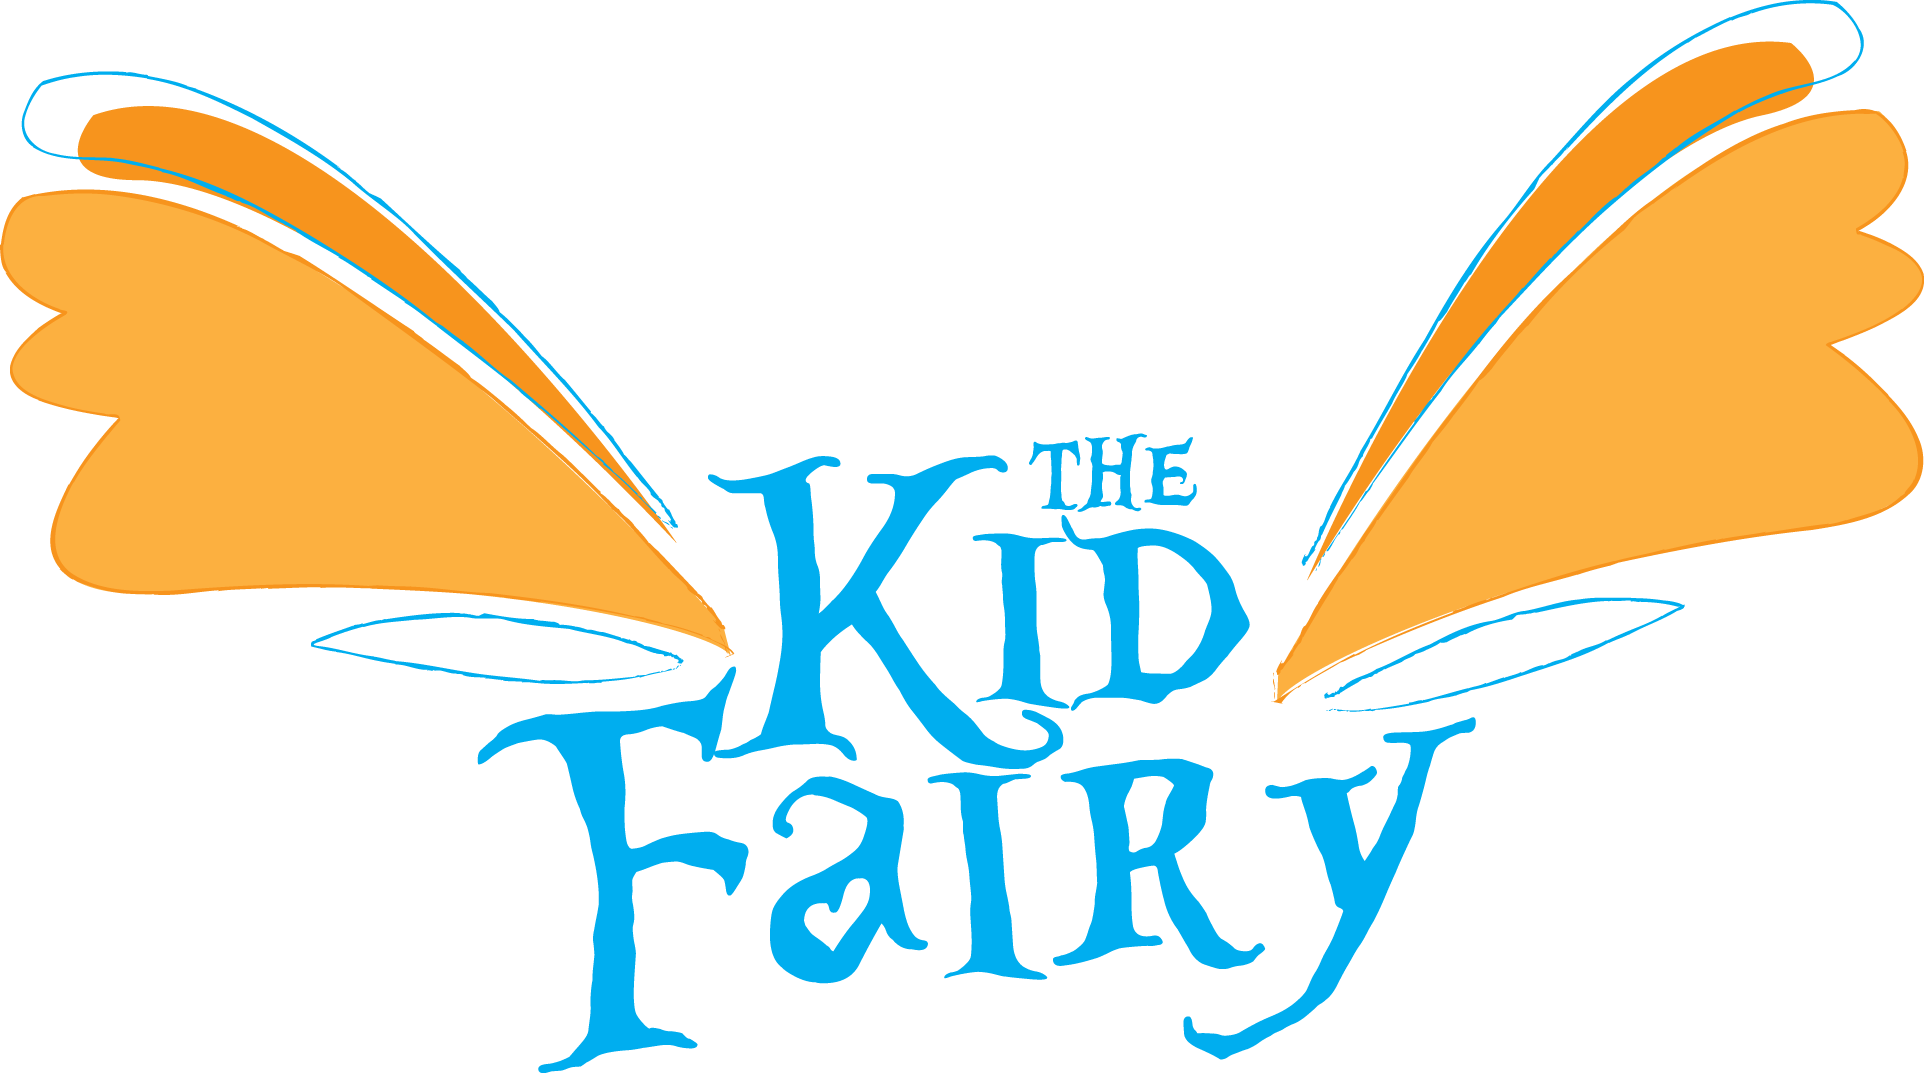 The Kid Fairy